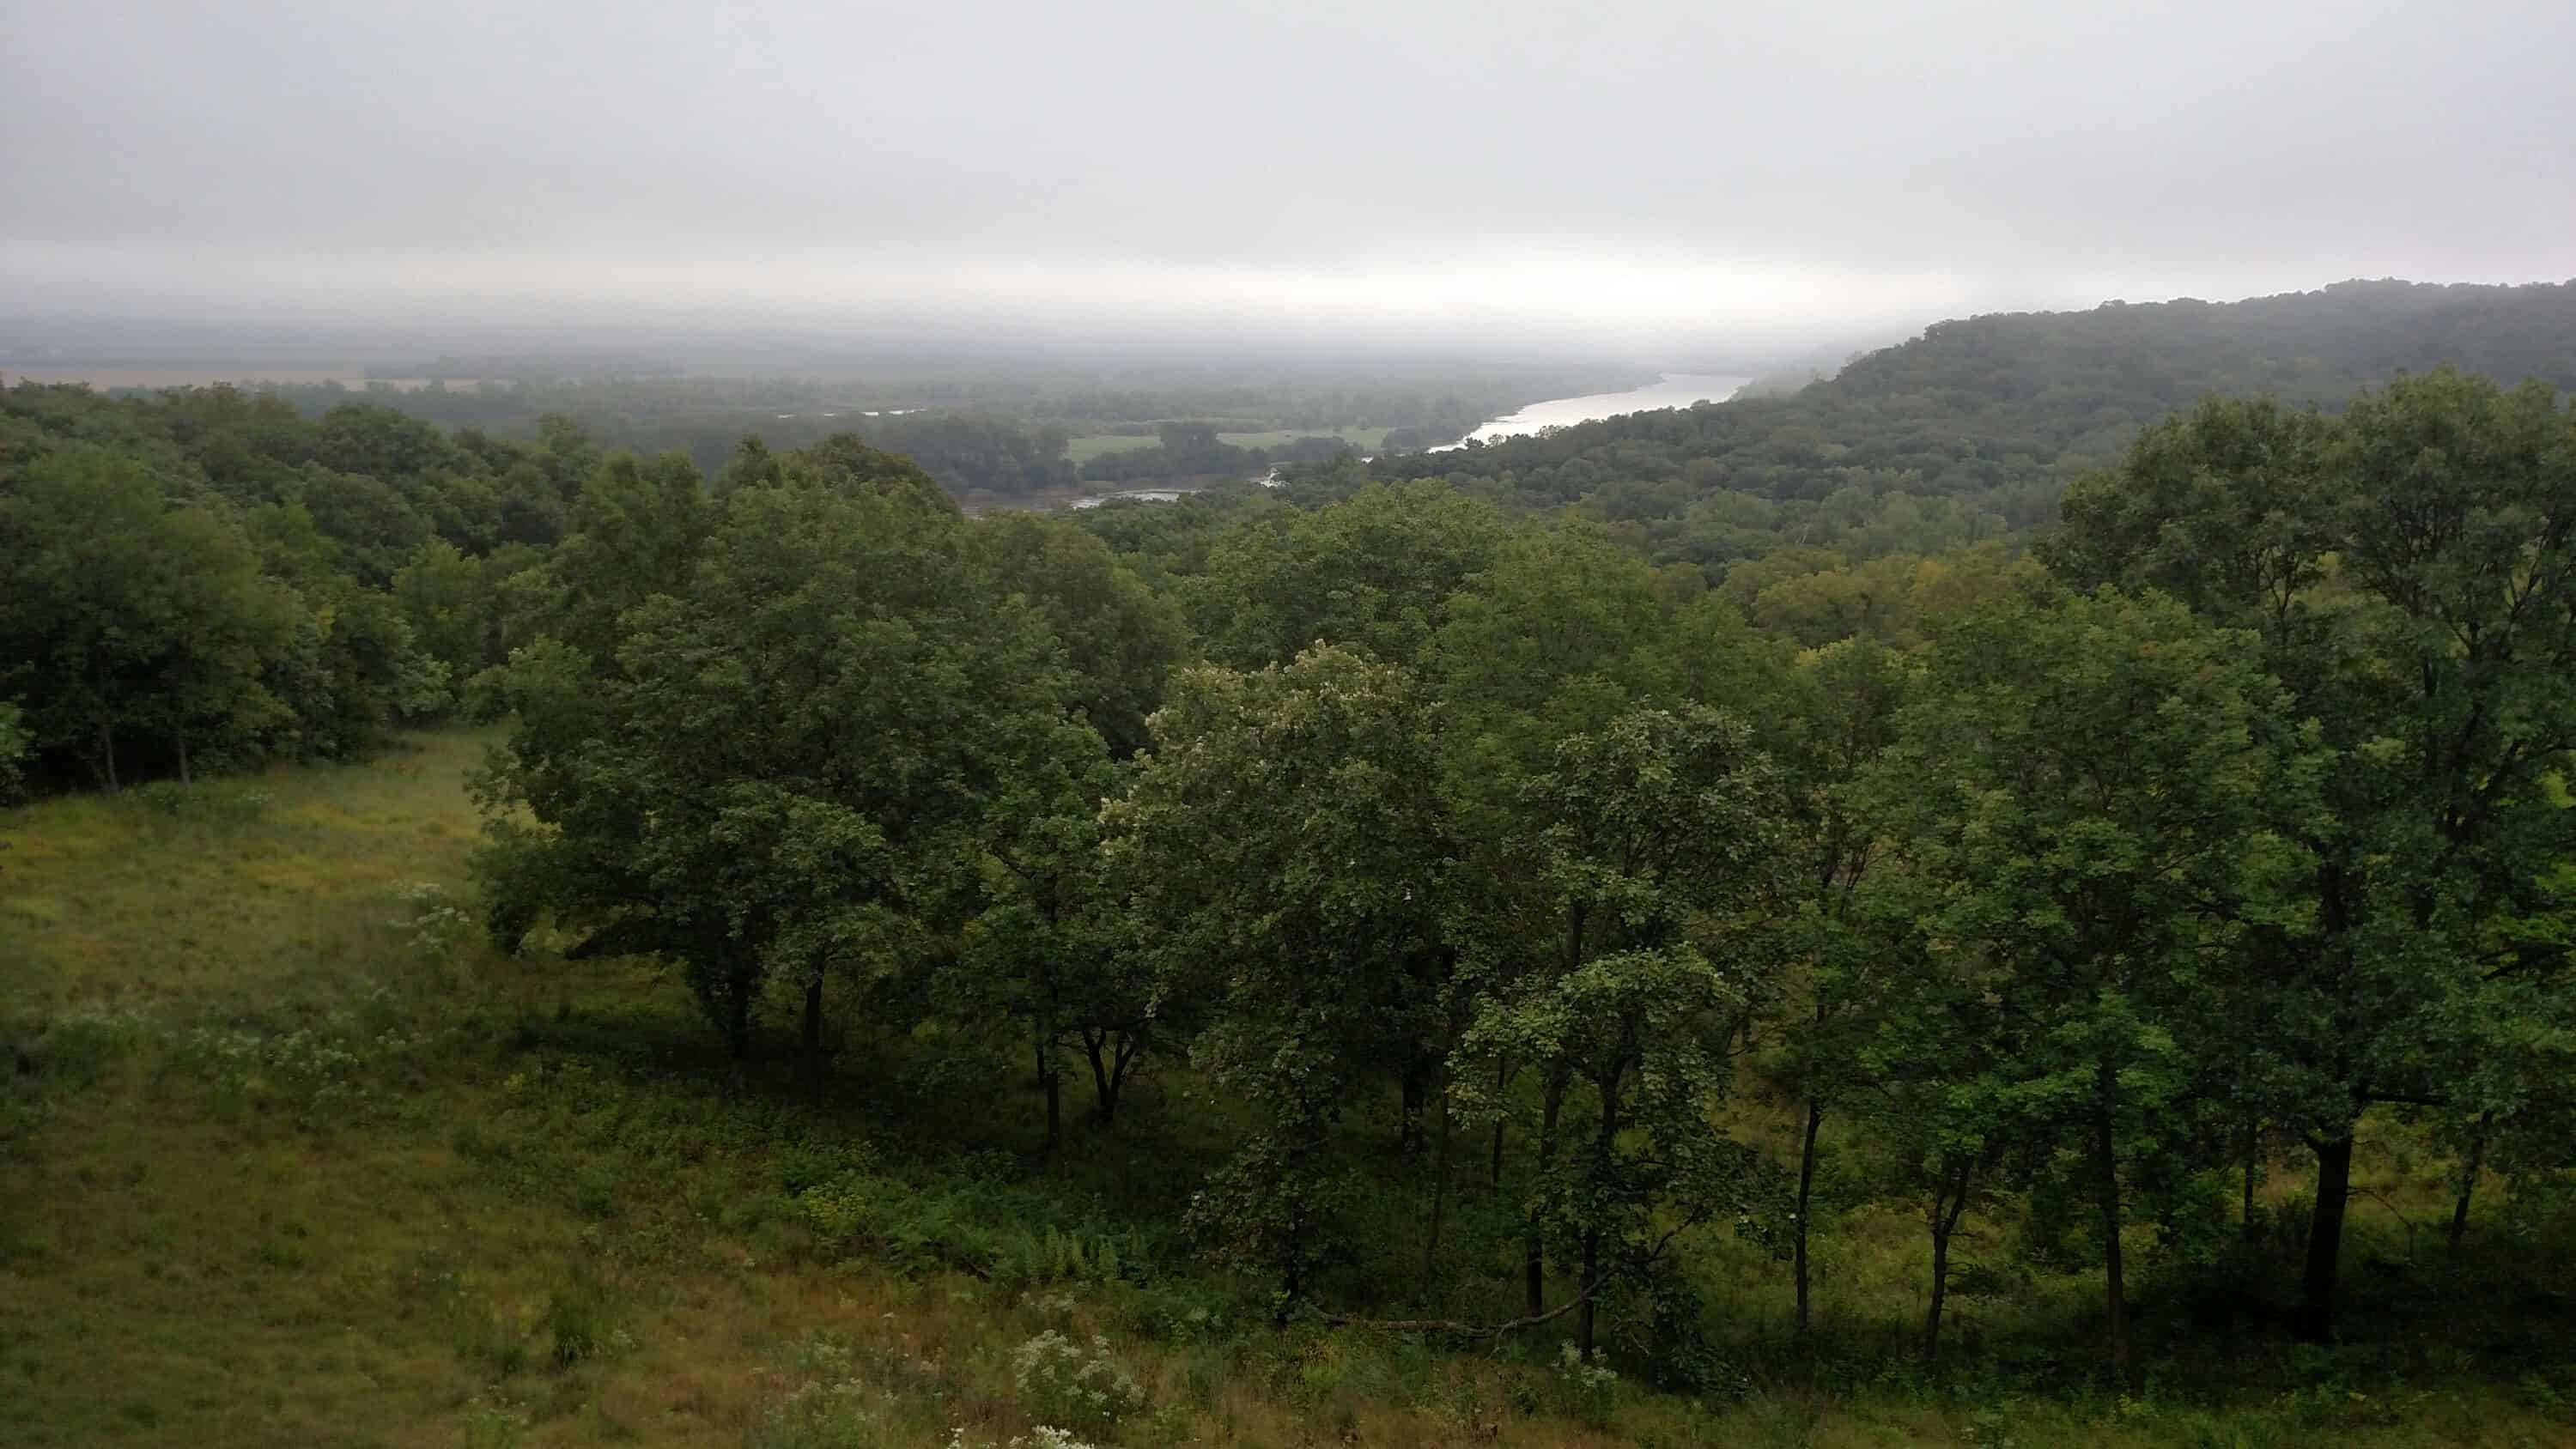 View of Missouri River from Above